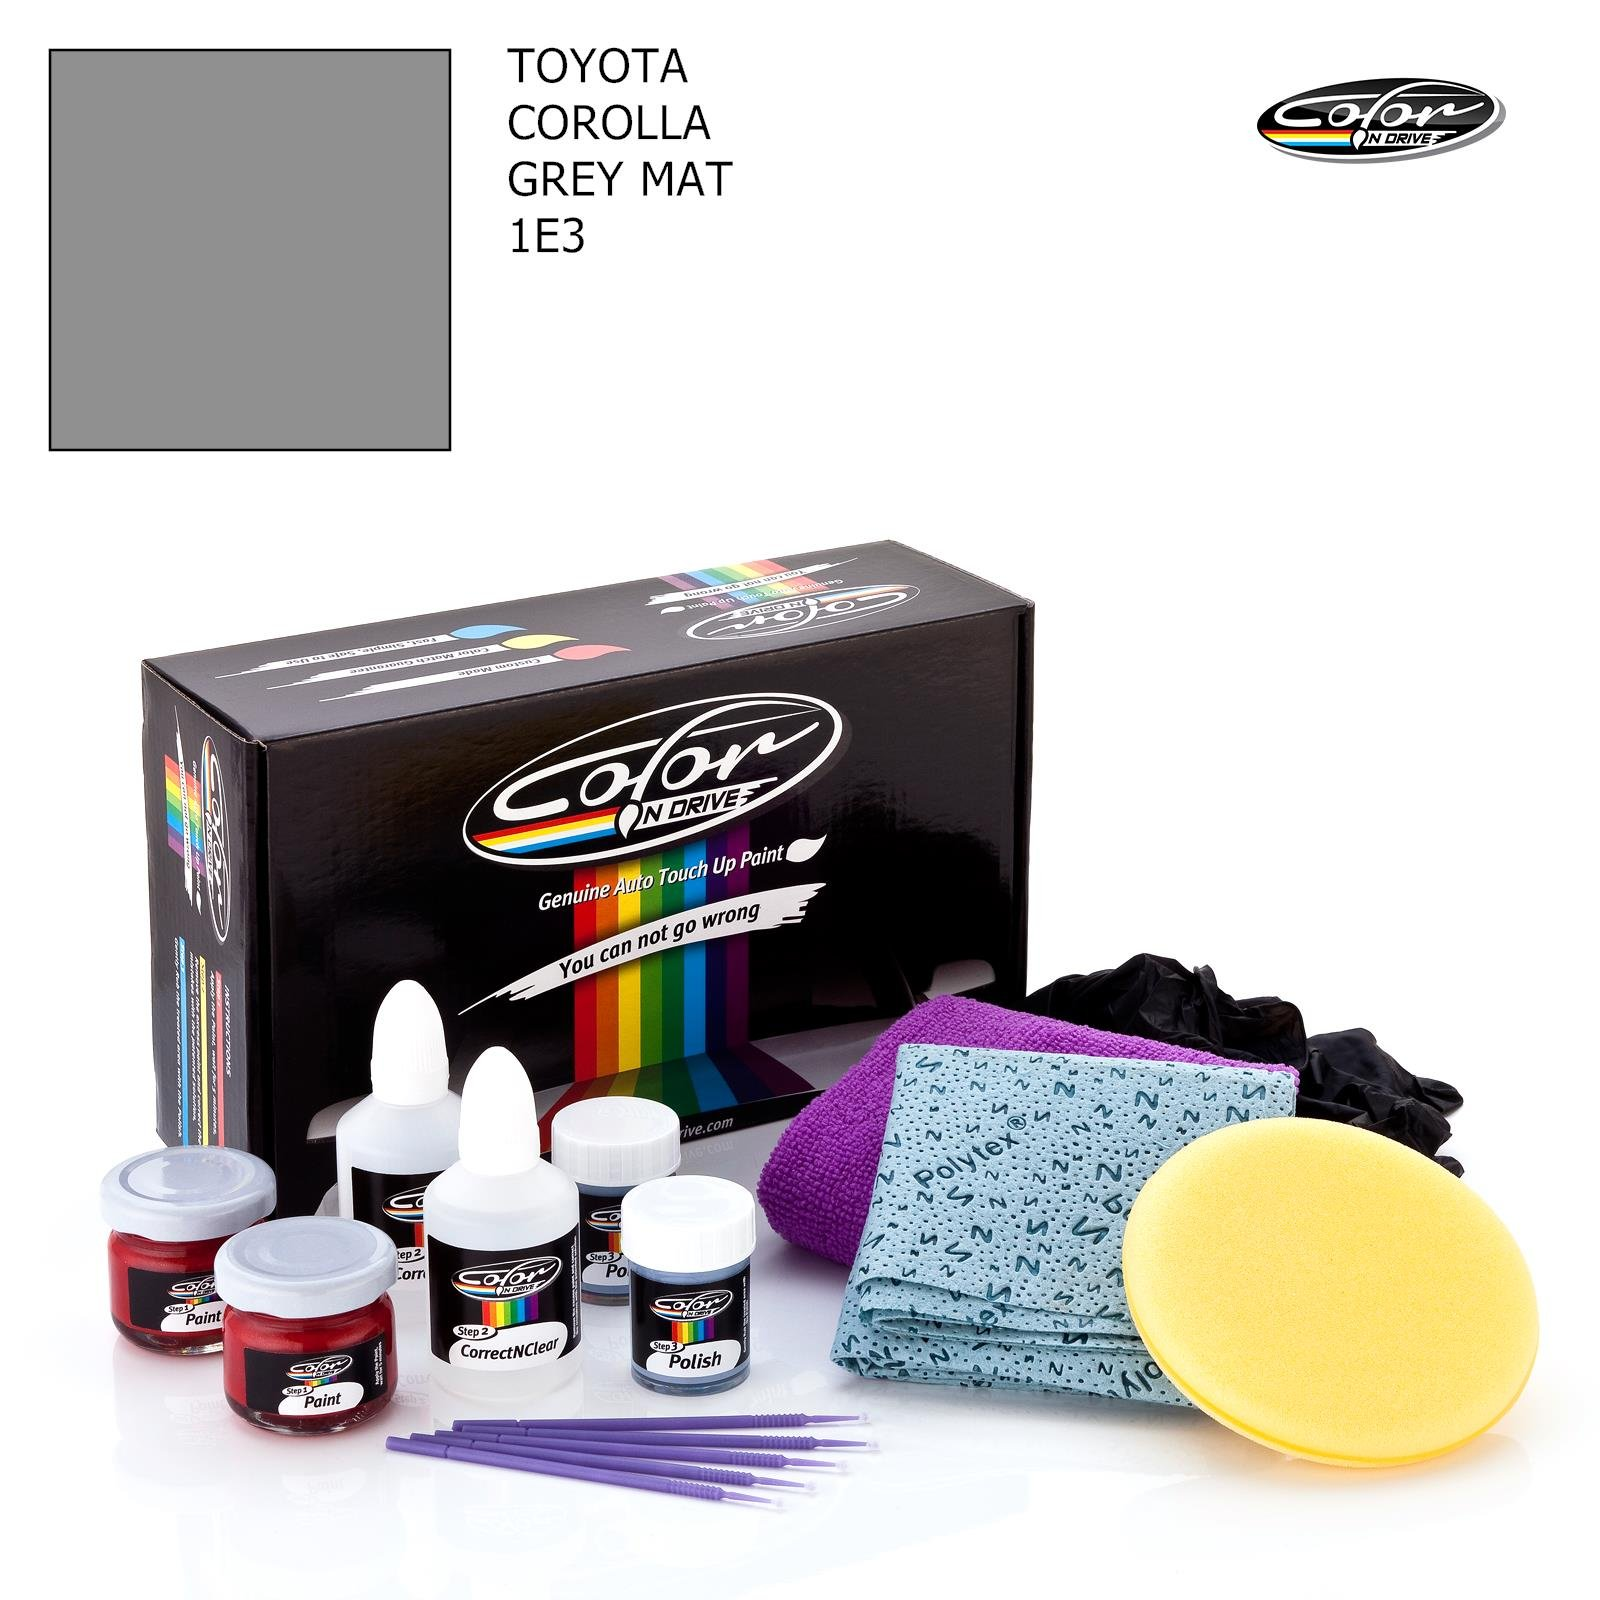 Toyota Corolla/Grey MAT - 1E3 / Color N Drive Touch UP Paint System for Paint Chips and Scratches/Plus Pack